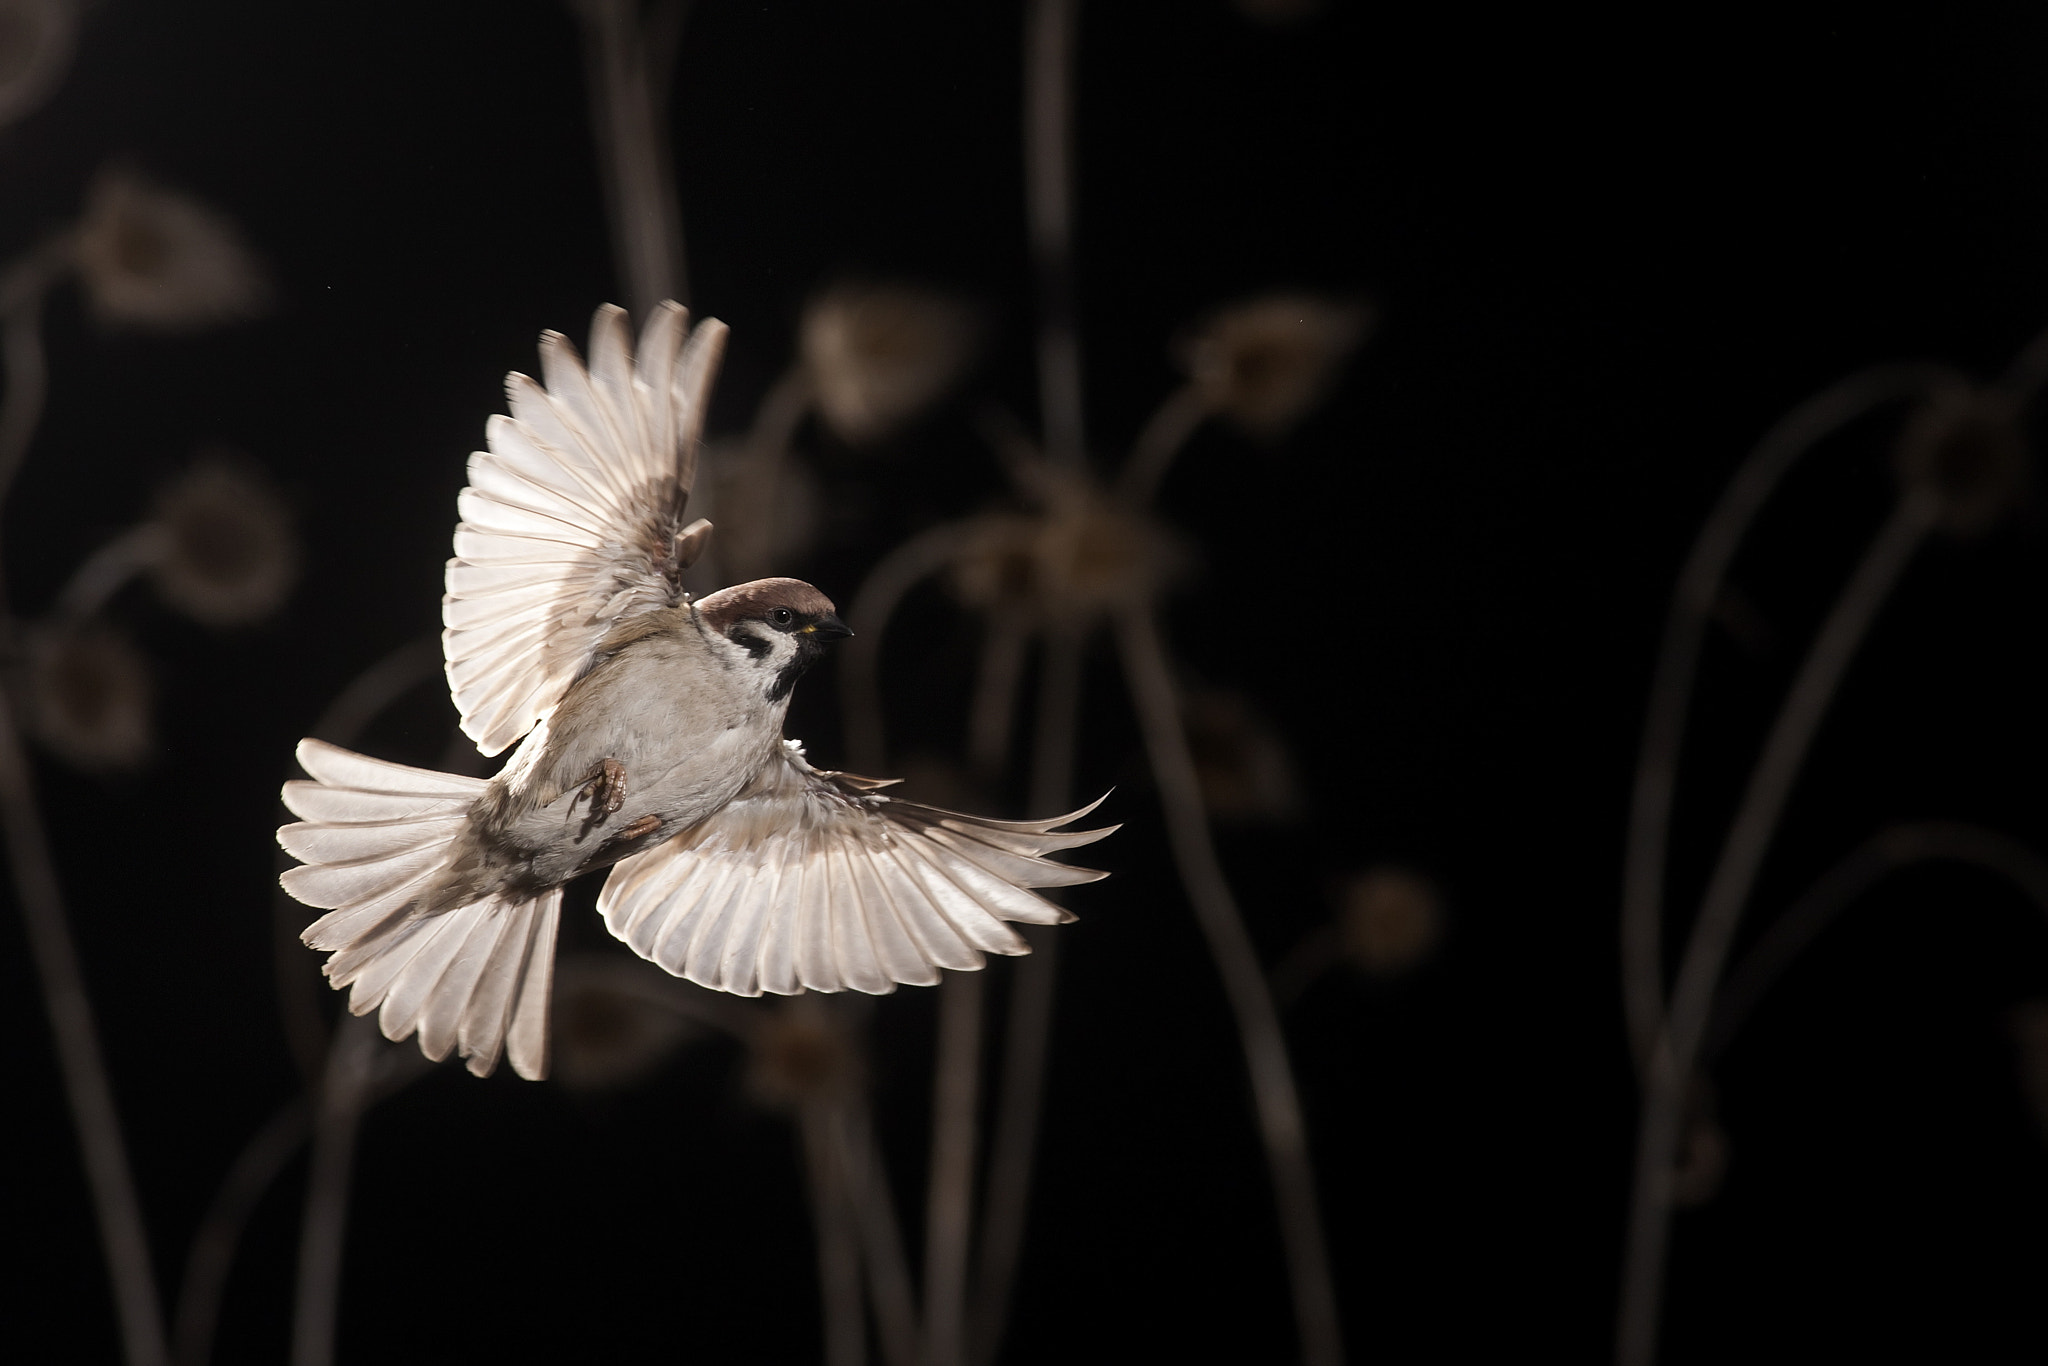 Photograph sparrow in flight by Tibor Jakab on 500px